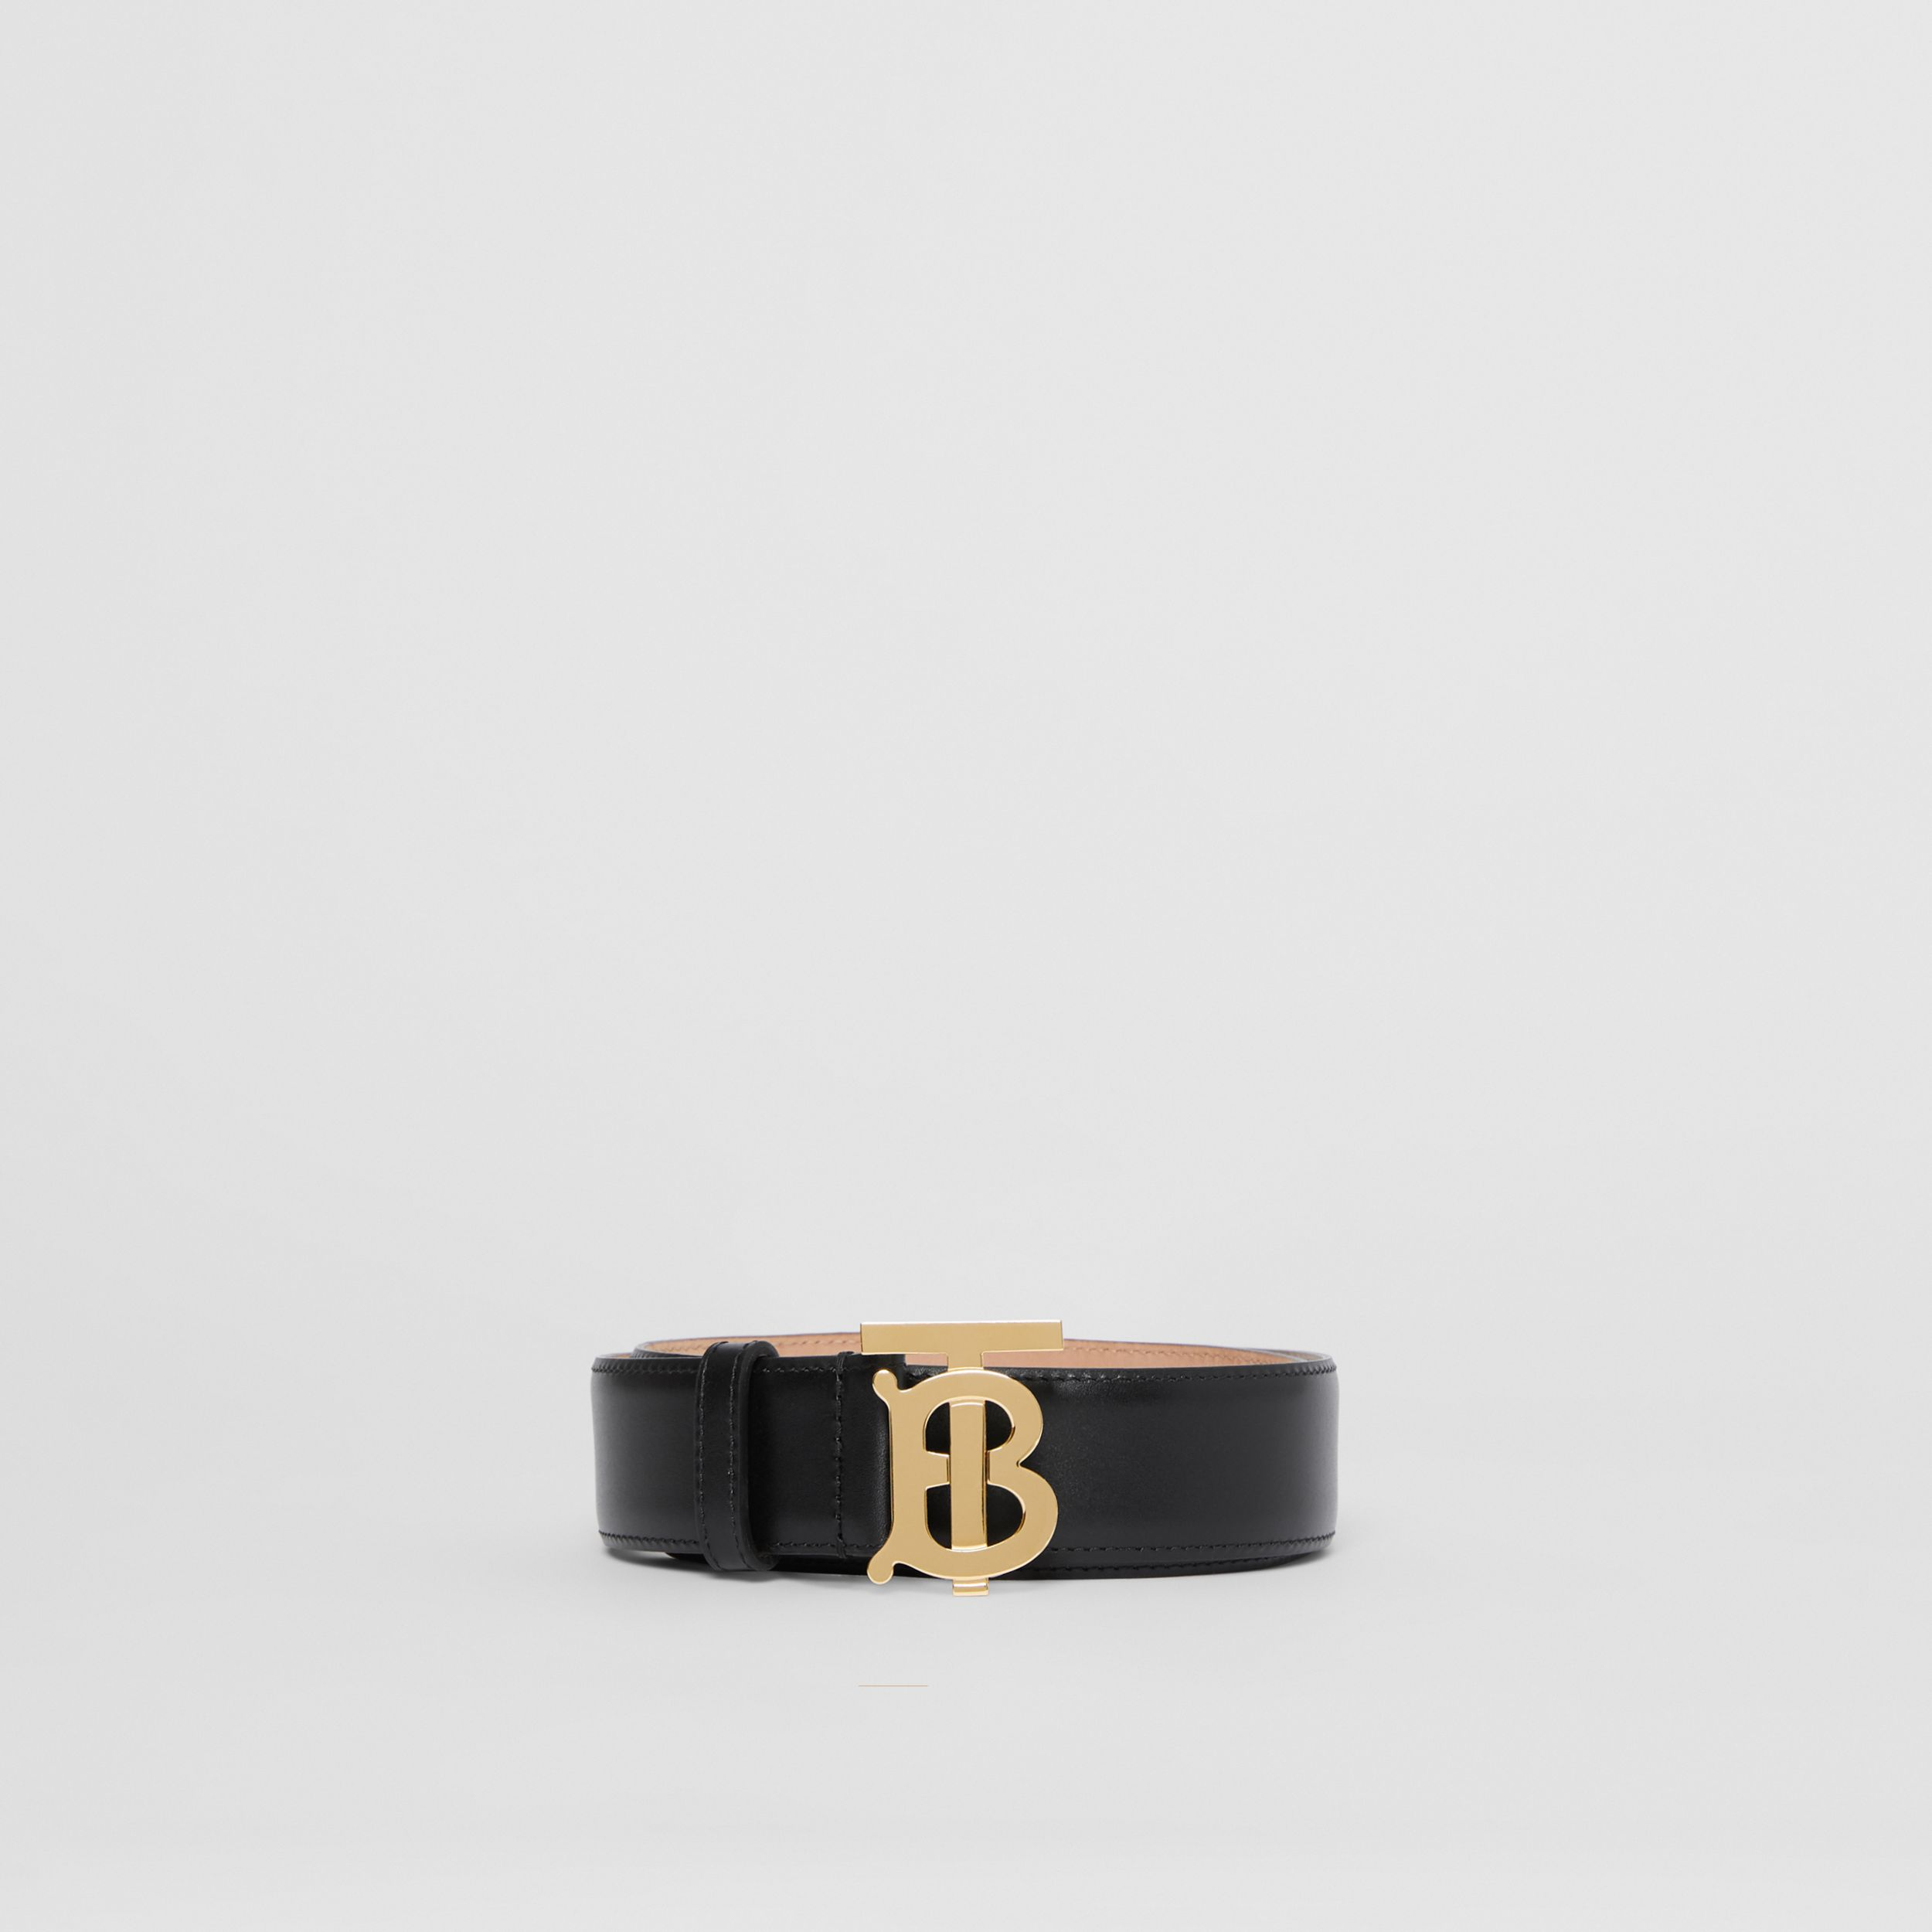 Monogram Motif Leather Belt in Black - Women | Burberry Singapore - 4